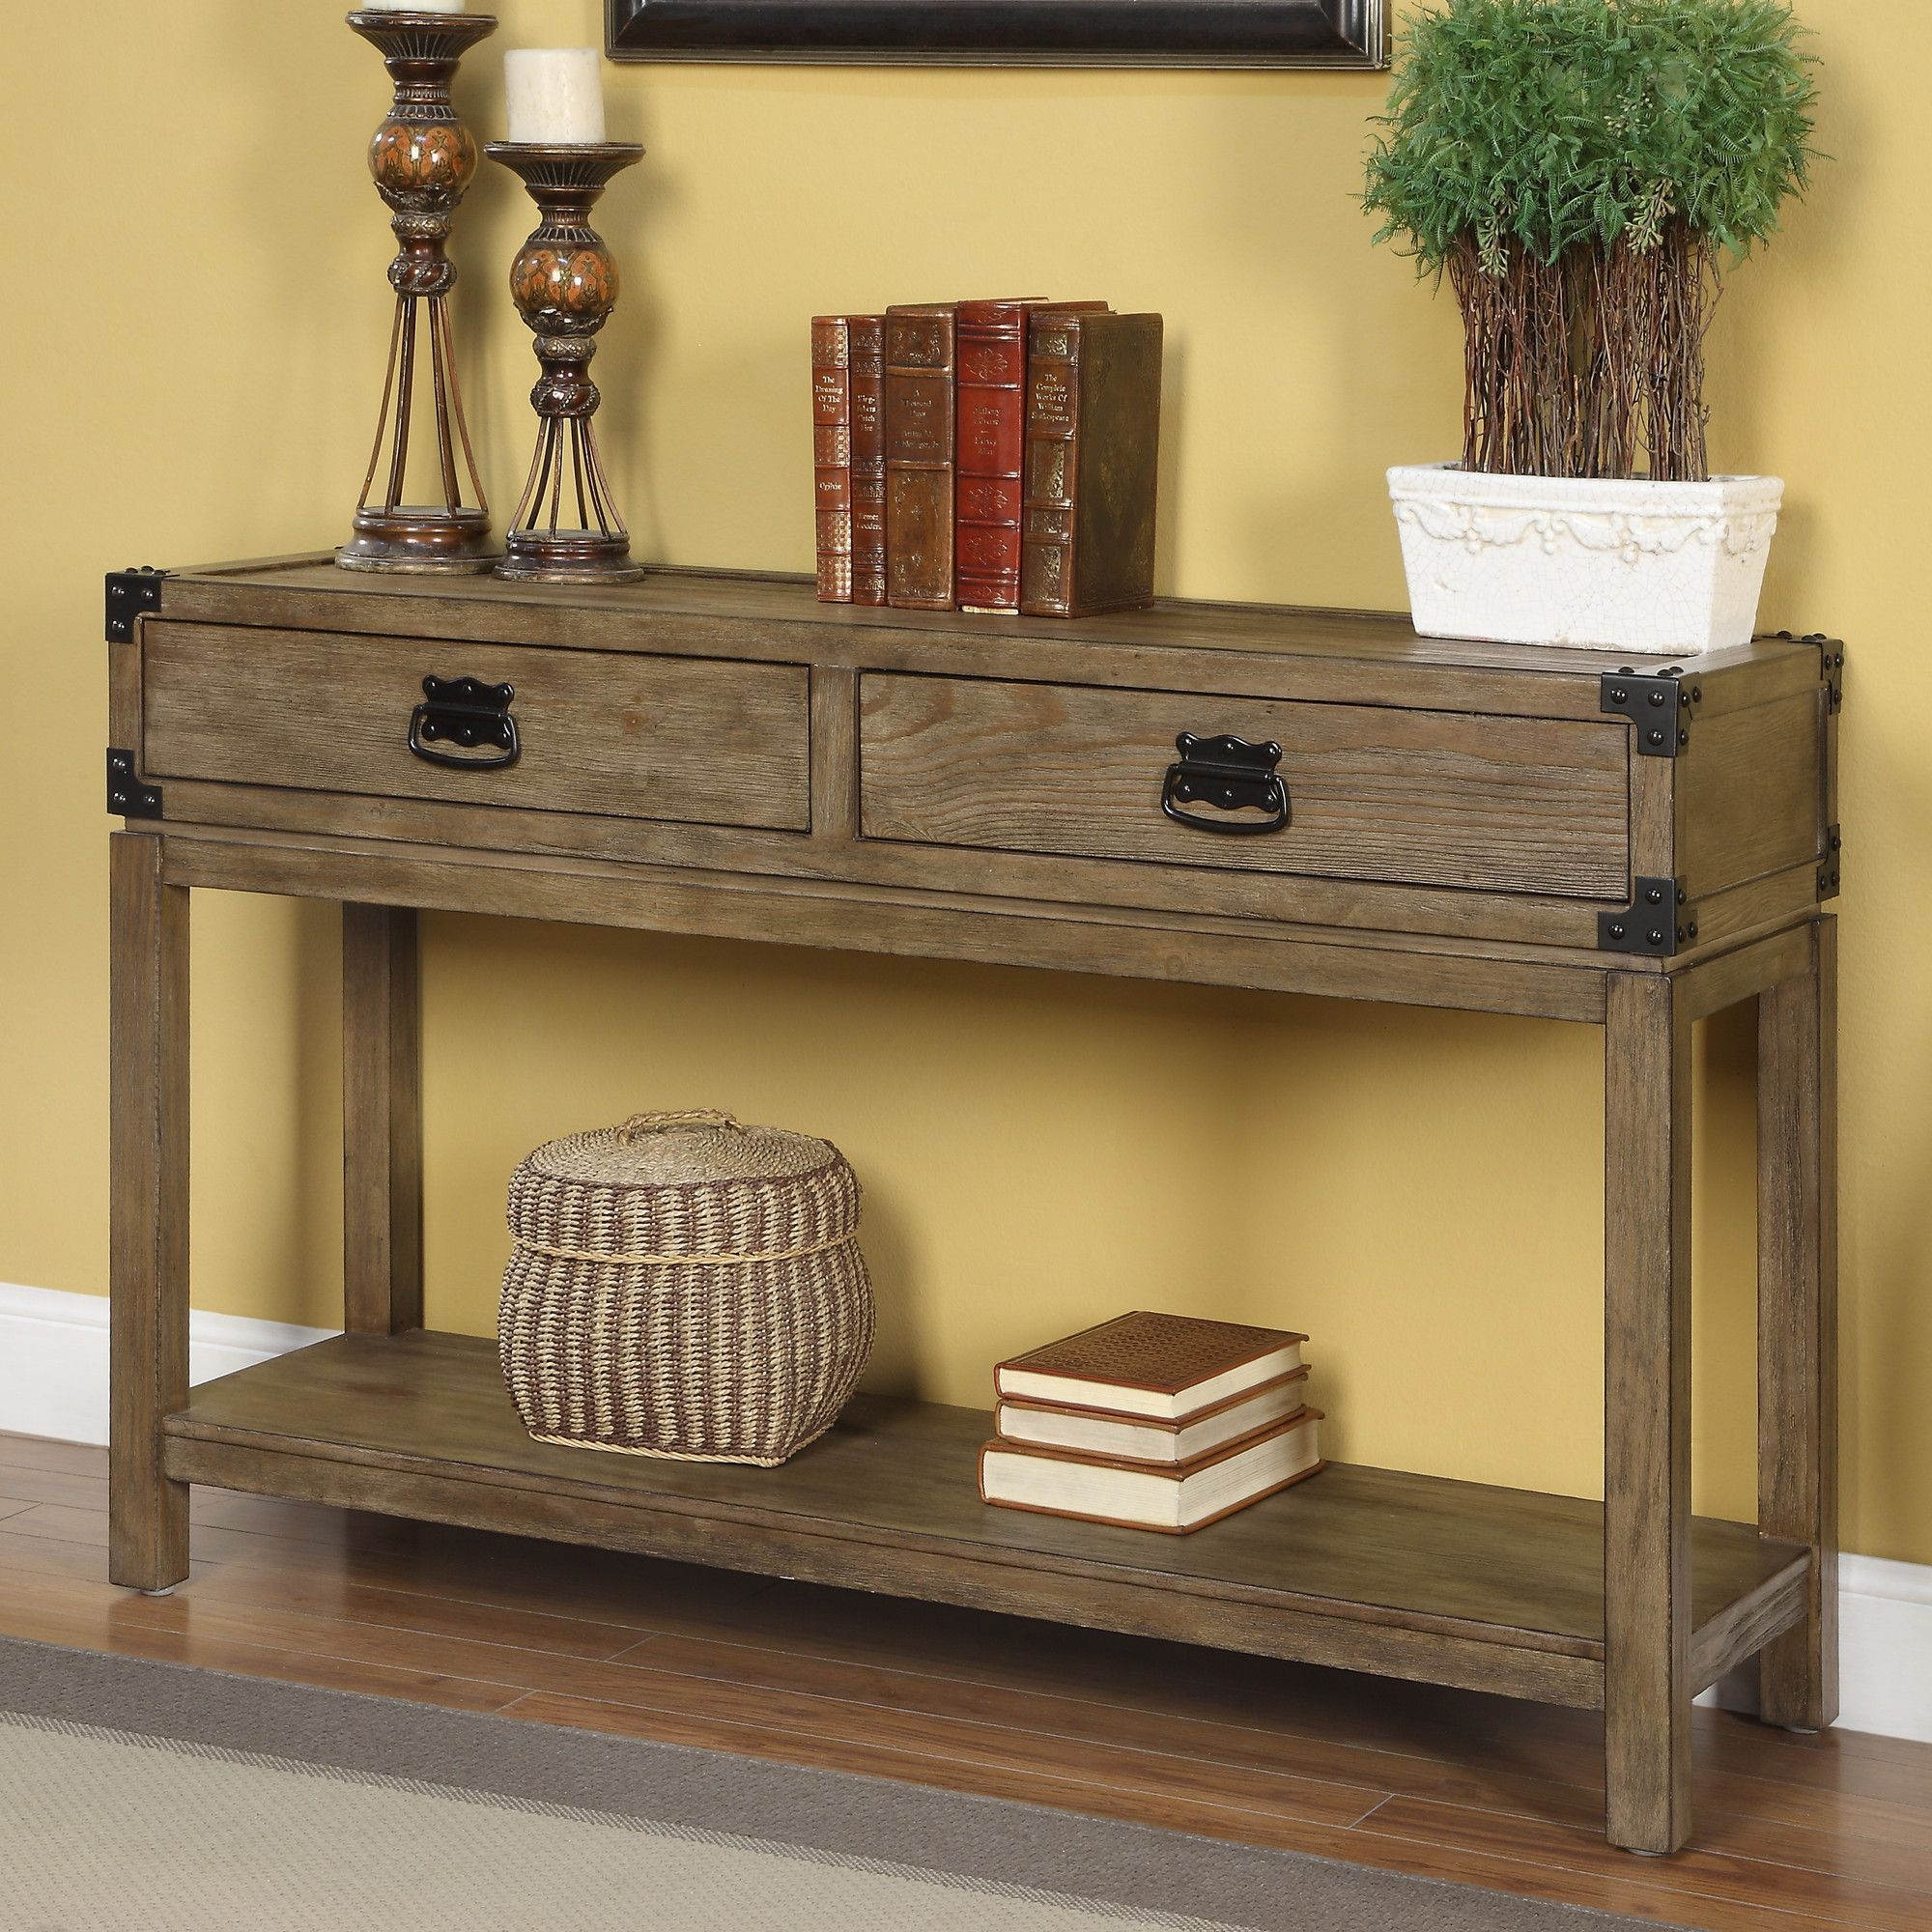 Coast To Coast Imports 2 Drawer Console Table Reviews Wayfair With Images Rustic Console Tables Rustic Consoles Farmhouse Console Table